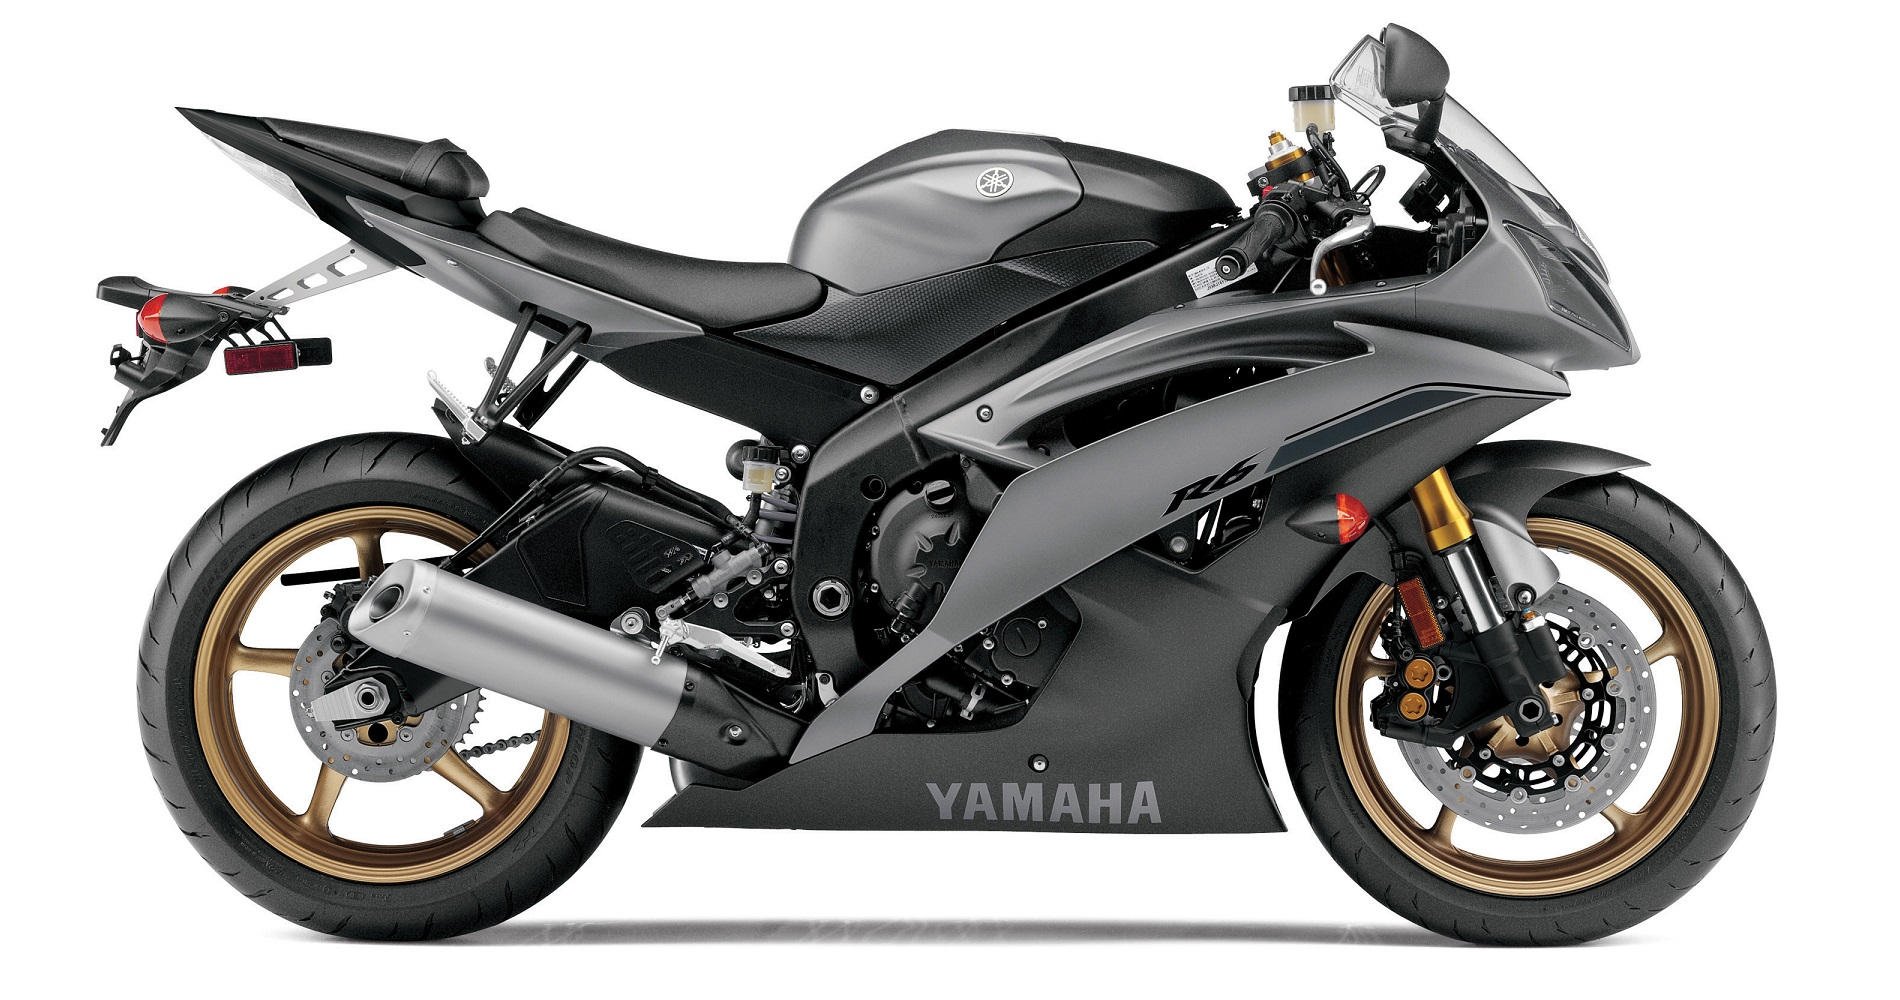 yamaha yzf r6 fiche technique avis et prix la poign e dans l 39 angle. Black Bedroom Furniture Sets. Home Design Ideas